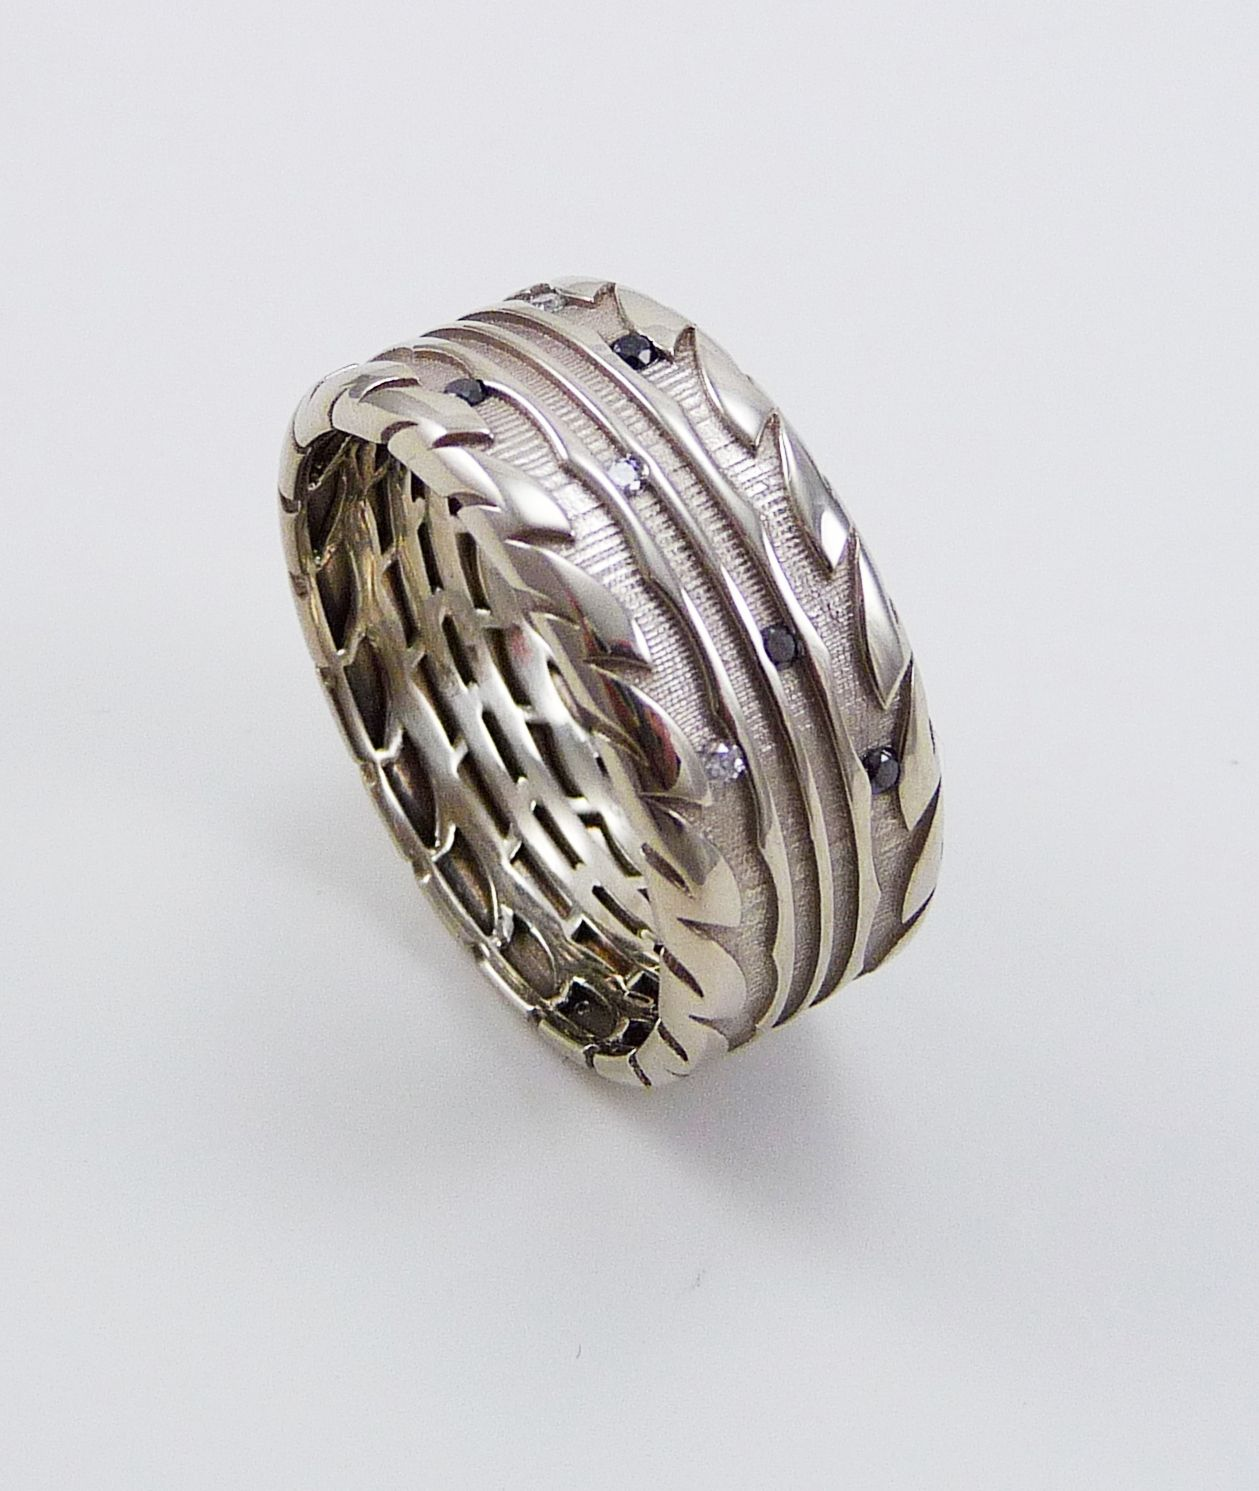 Tire Ring White Gold Mens Wedding With Colorless And Black Diamonds For My Grooms Band Car Truck Nerd That He Is